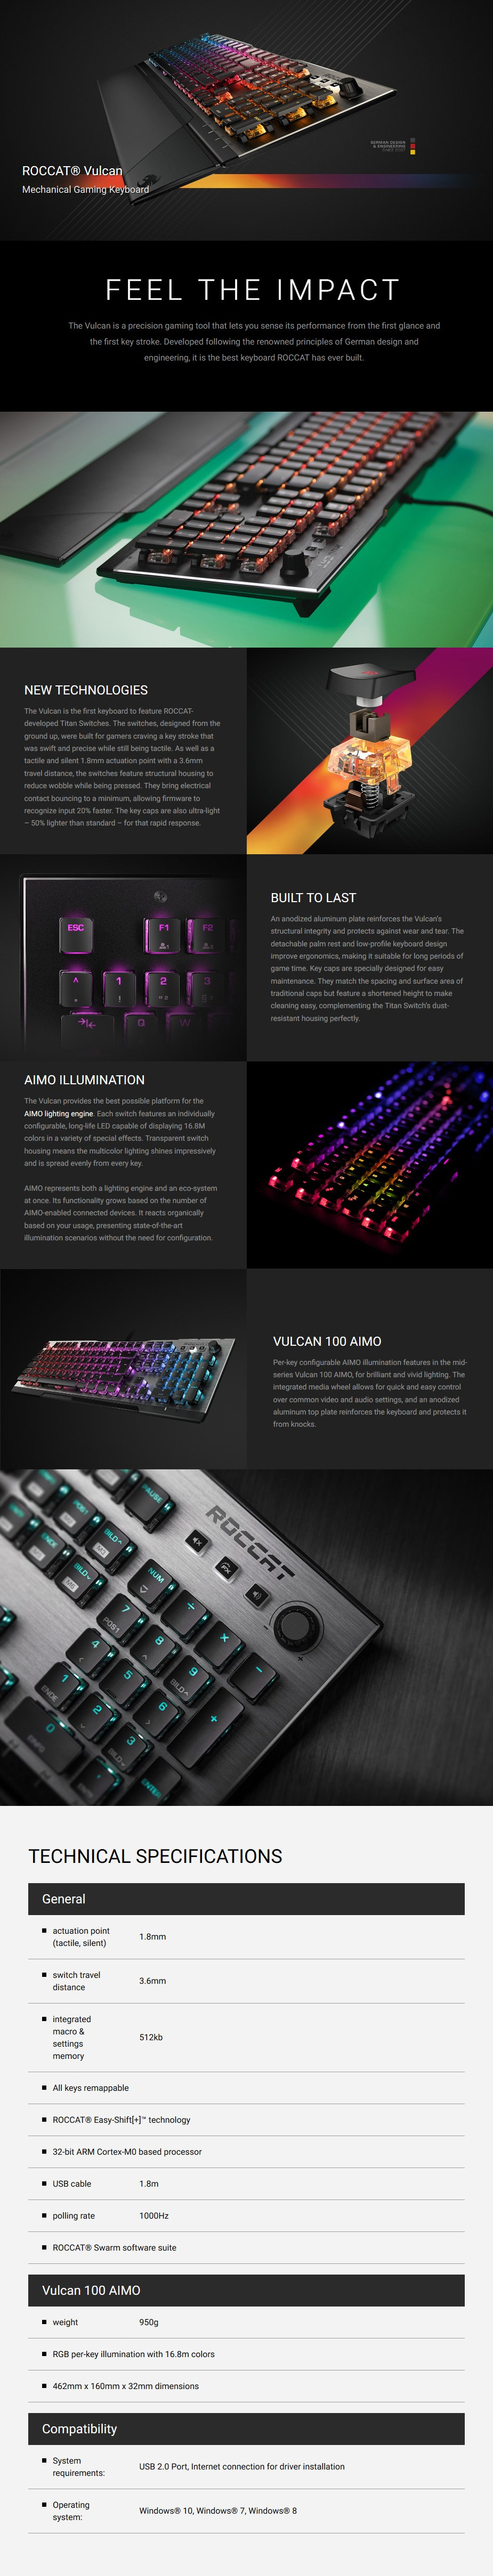 Roccat VULCAN 100 AIMO Mechanical Gaming Keyboard - Brown Titan Switches - Desktop Overview 1